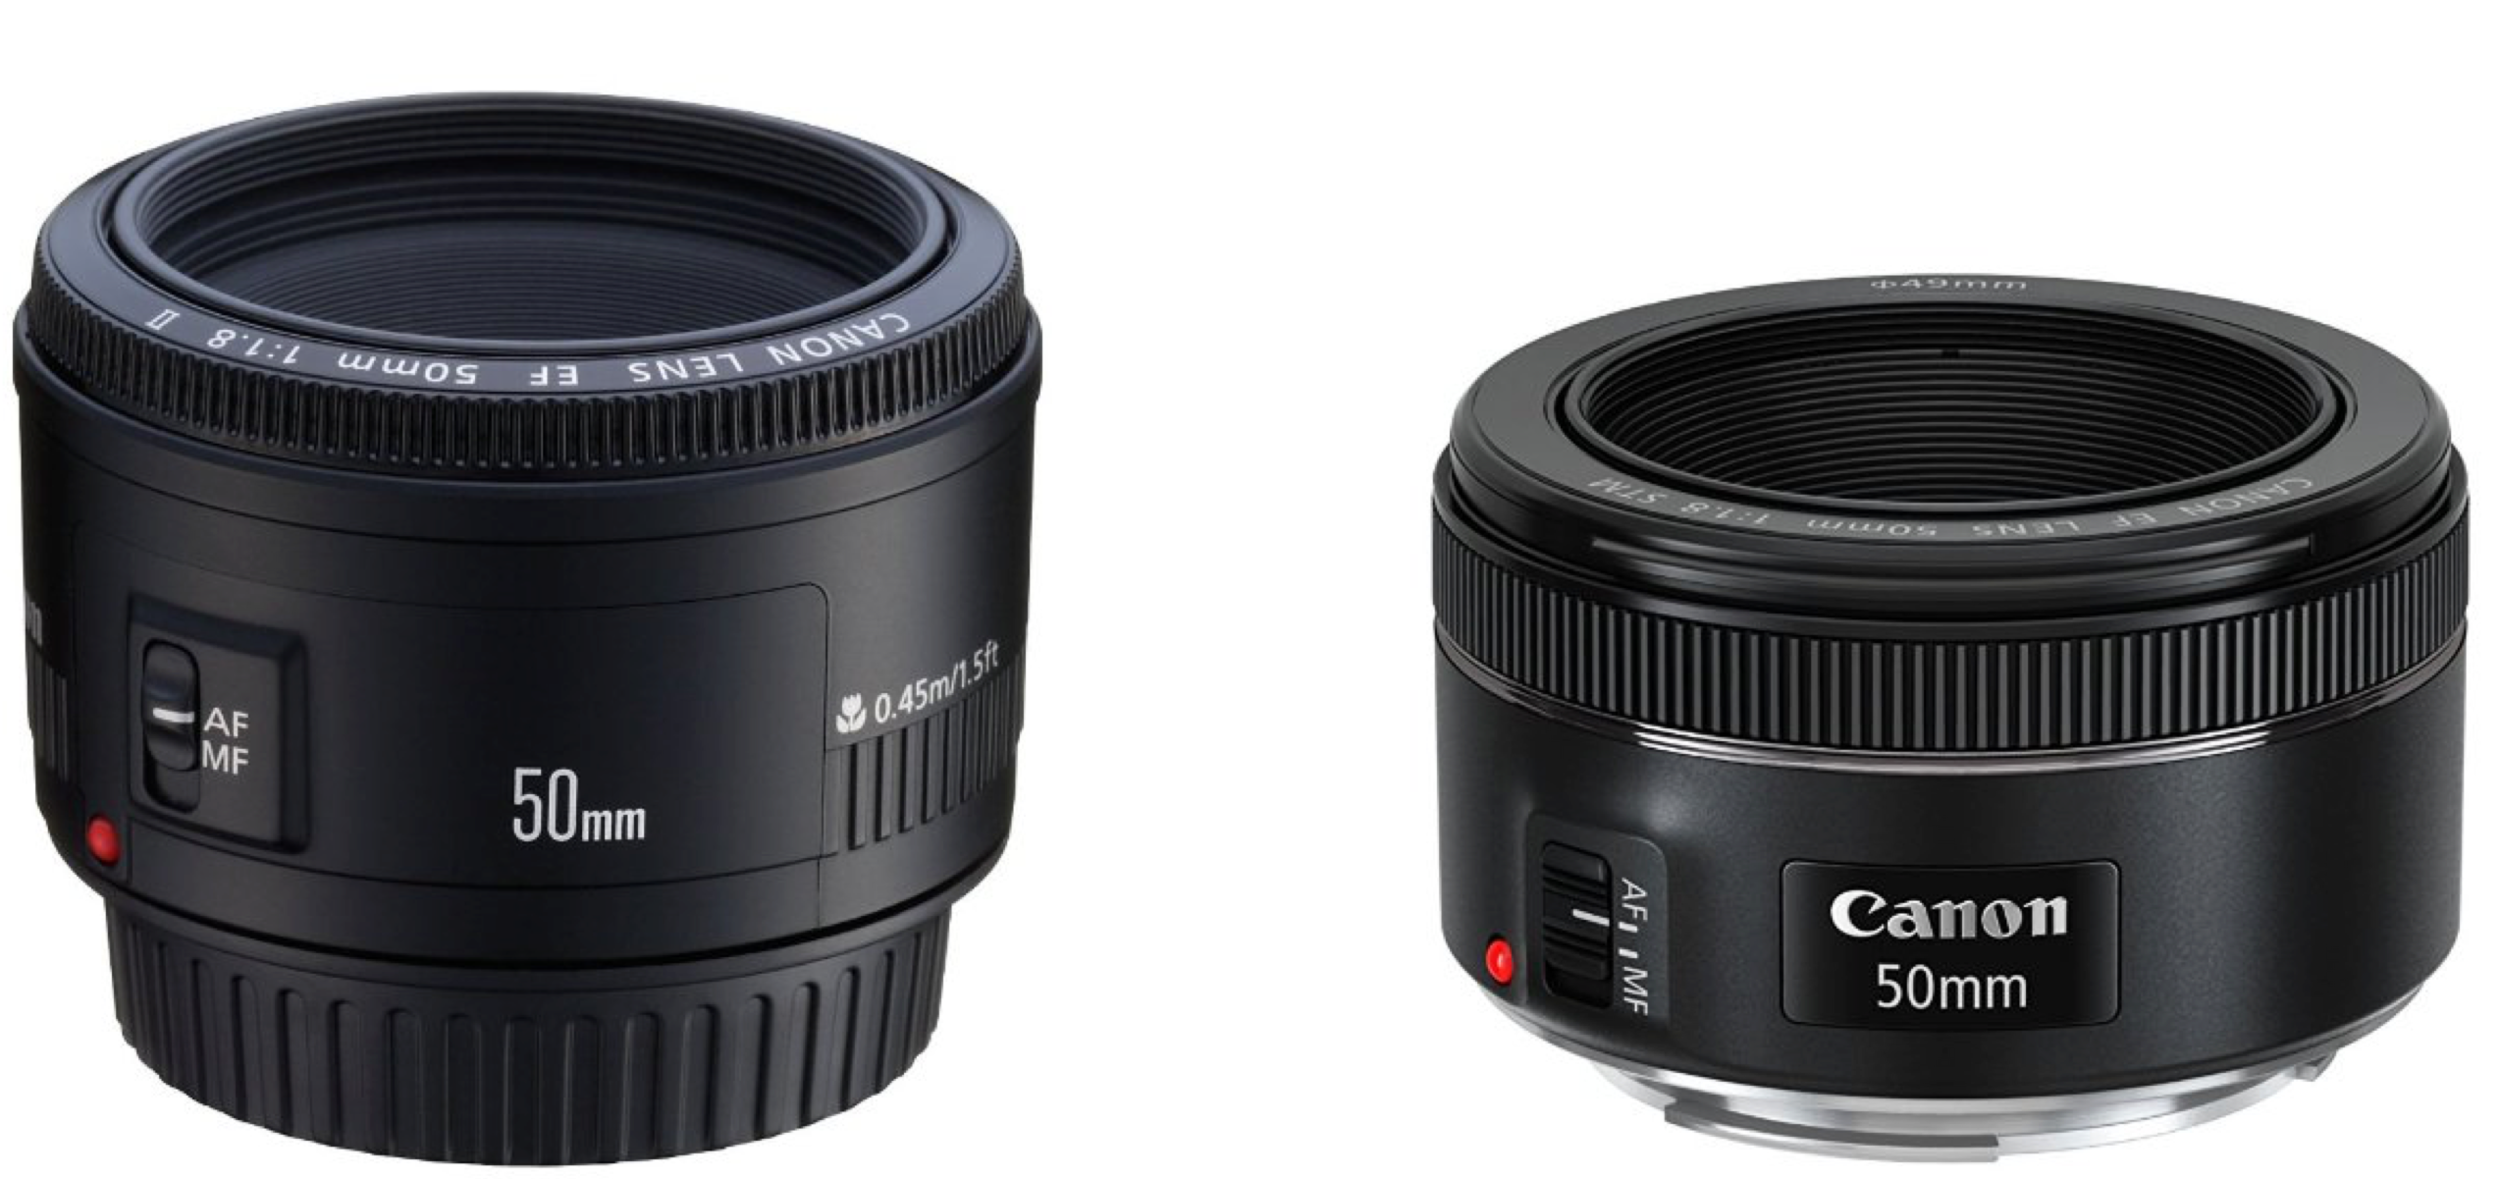 Canon 50mm f/1.8 II on left (discontinued but still available for  $125 at Amazon ), newer Canon 50mm f/1.8 STM  [ B&H | Amazon ] on right, also $125.